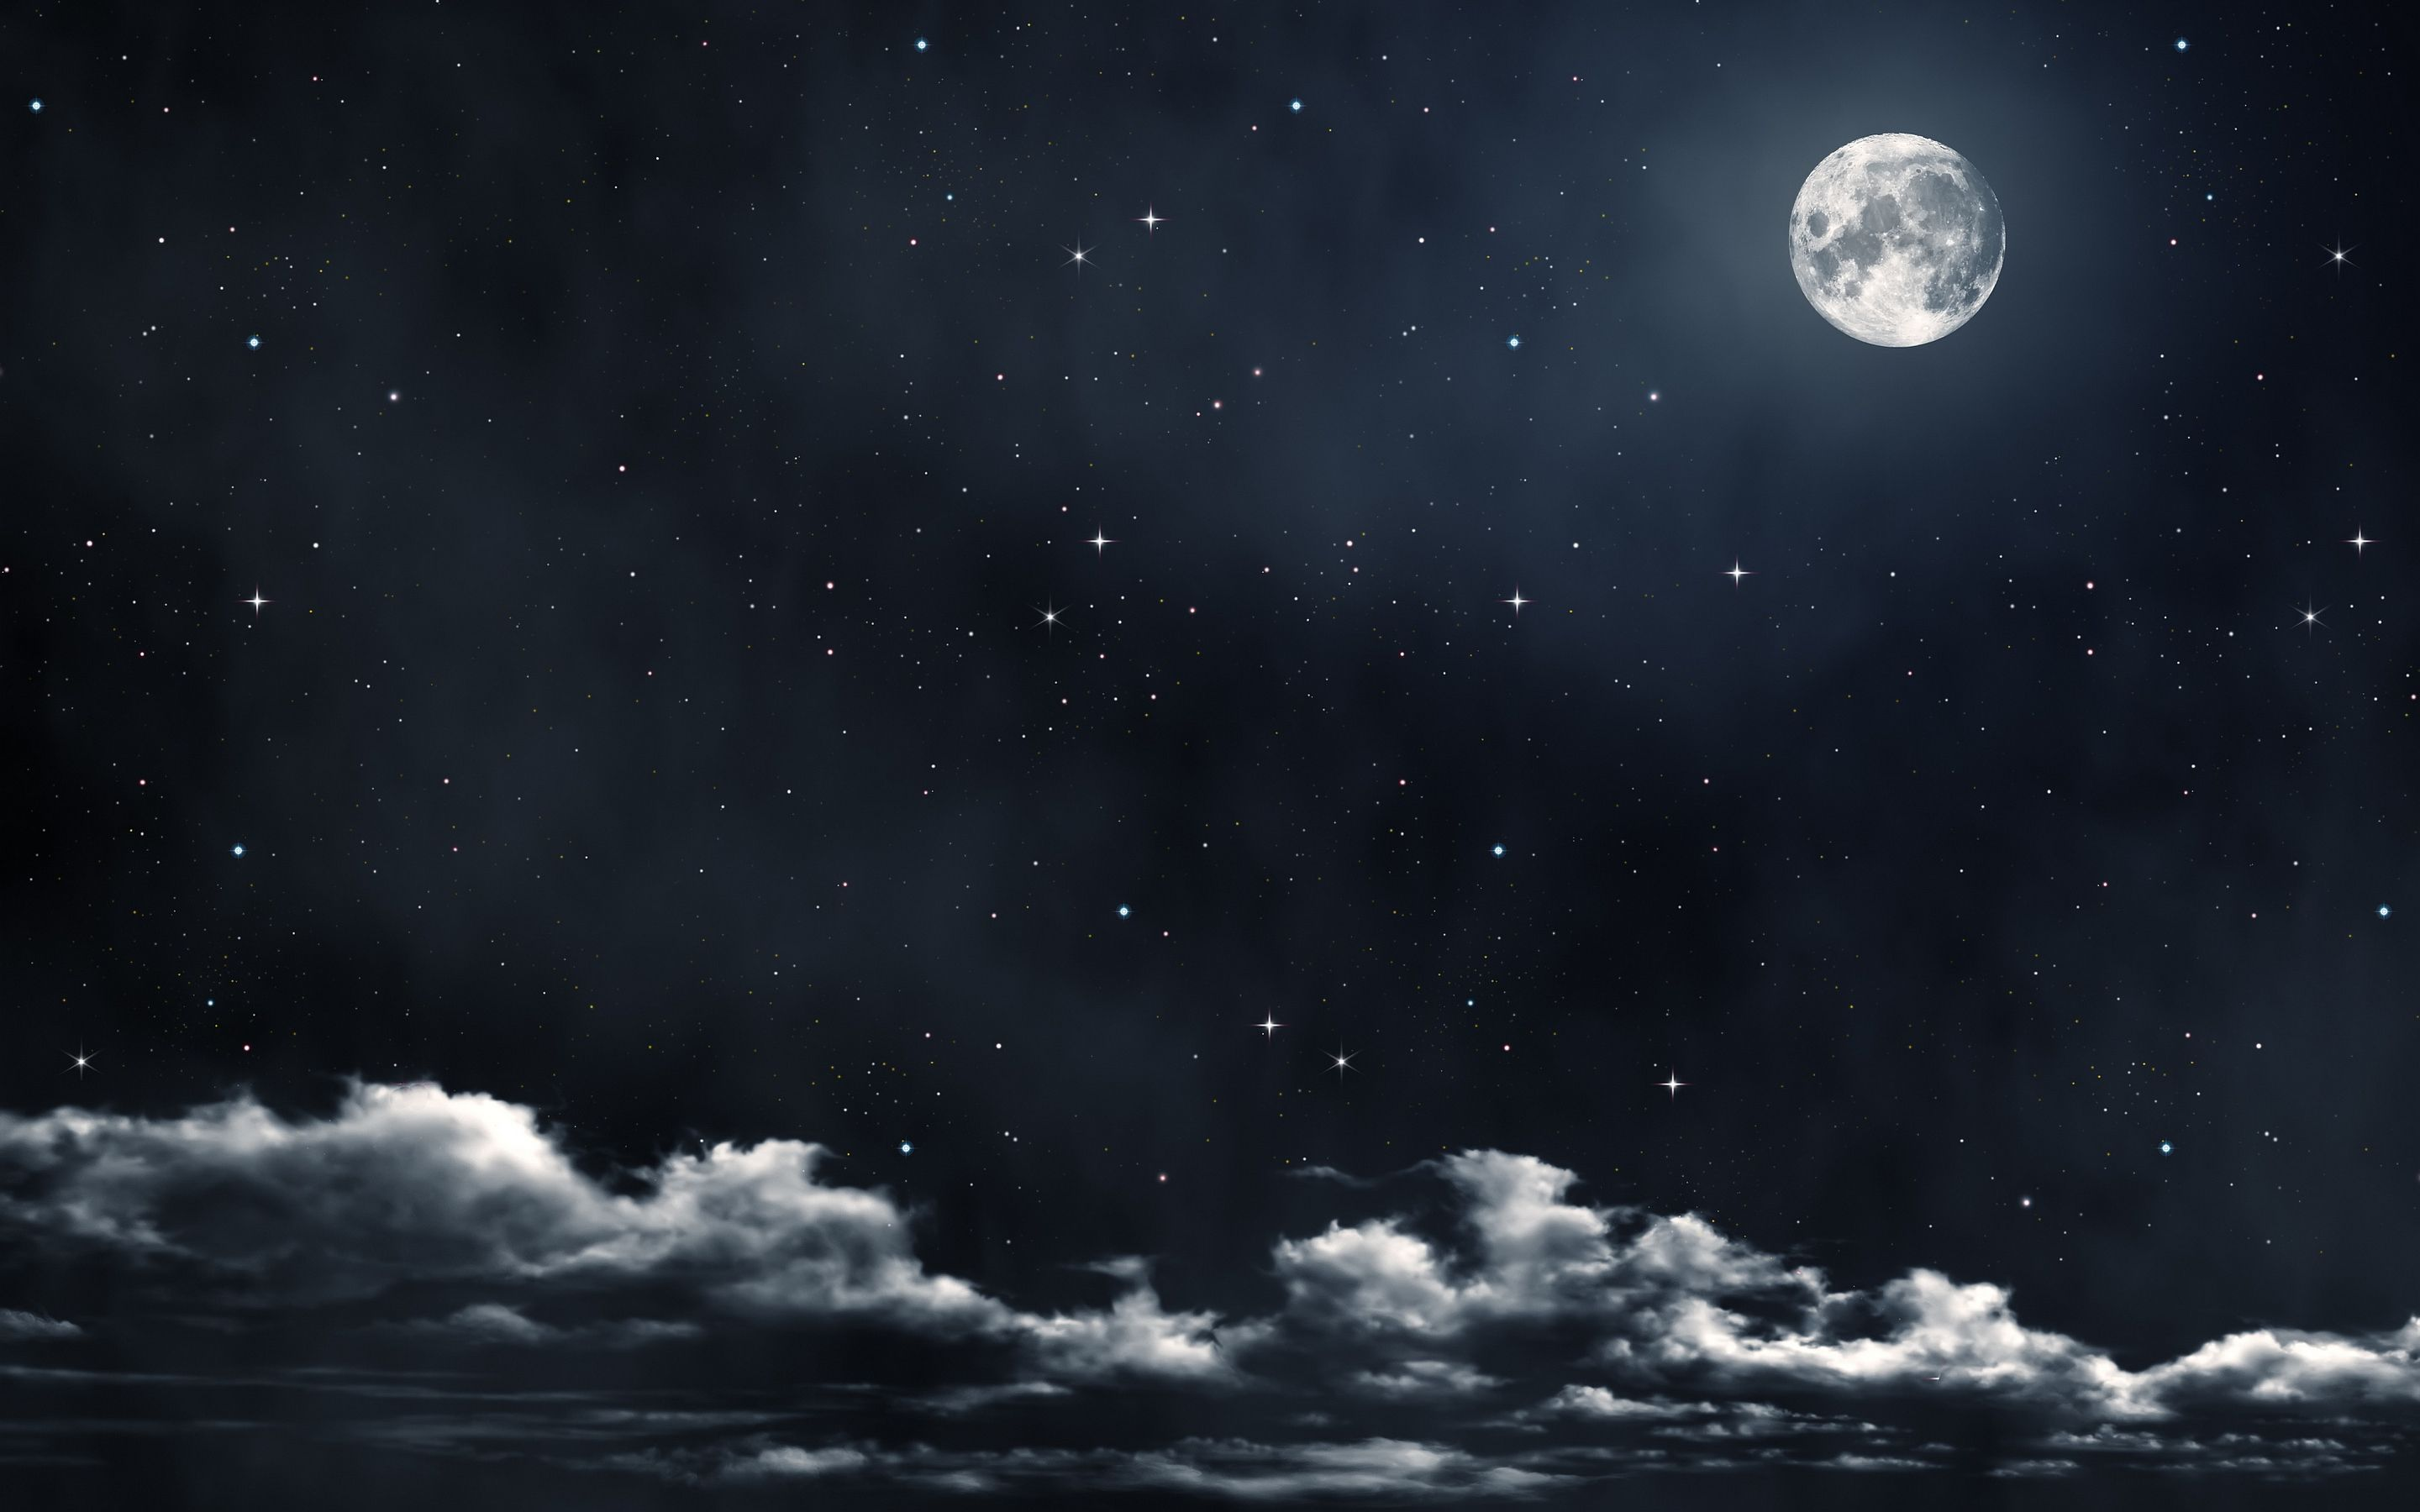 falling alseep on clouds in the night sky moon star quotes